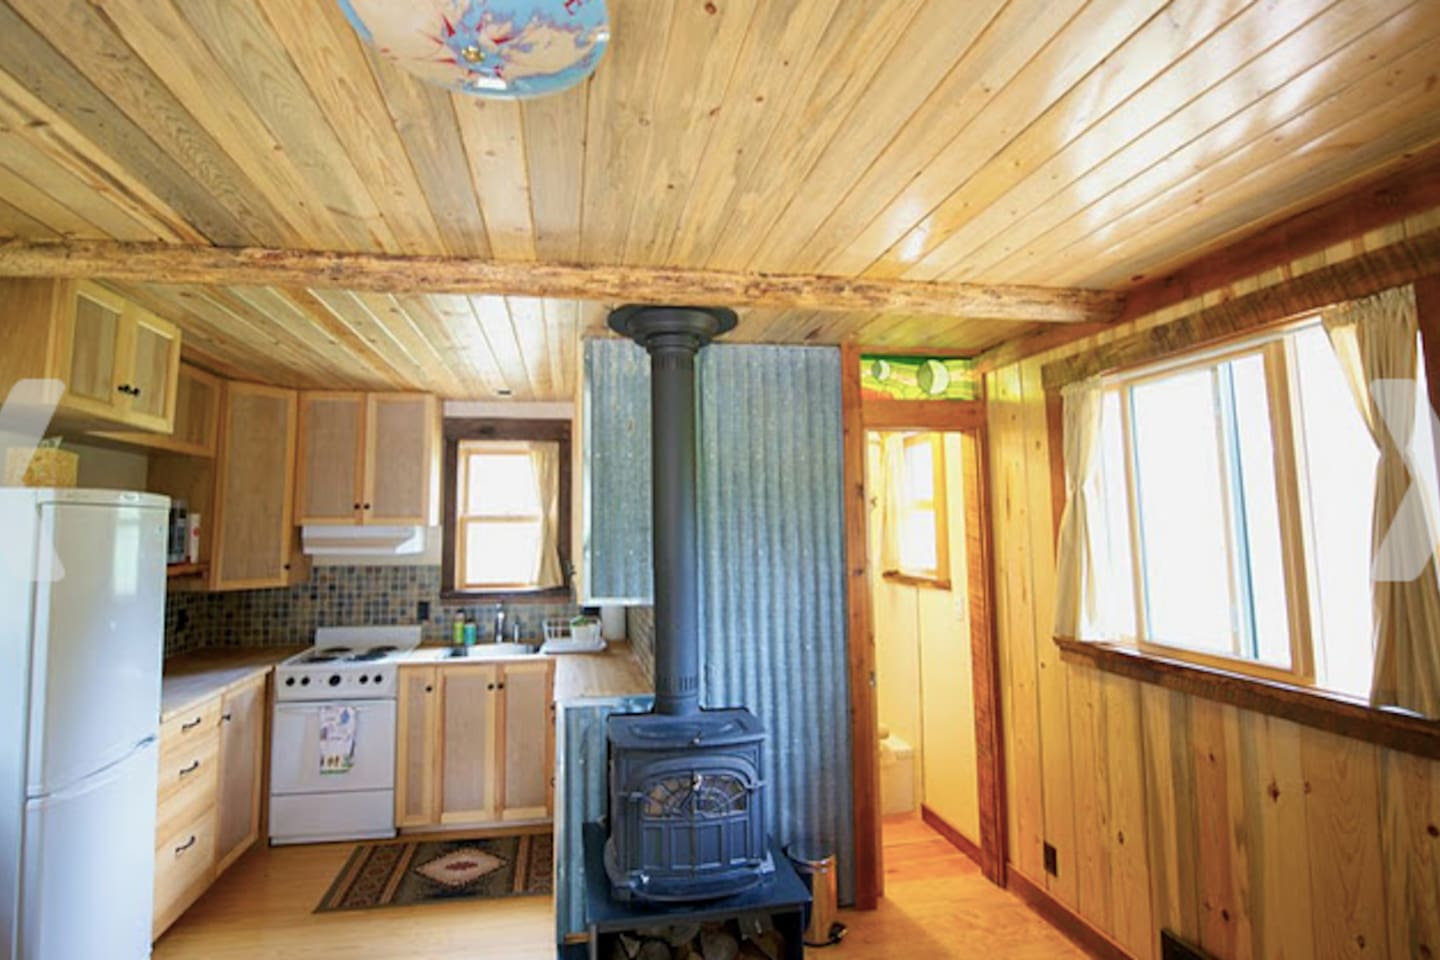 Full kitchen (micro, coffee maker and toaster hidden behind fridge) with all cooking basics provided. Firewood provided. Electric heat. Custom tile through out.